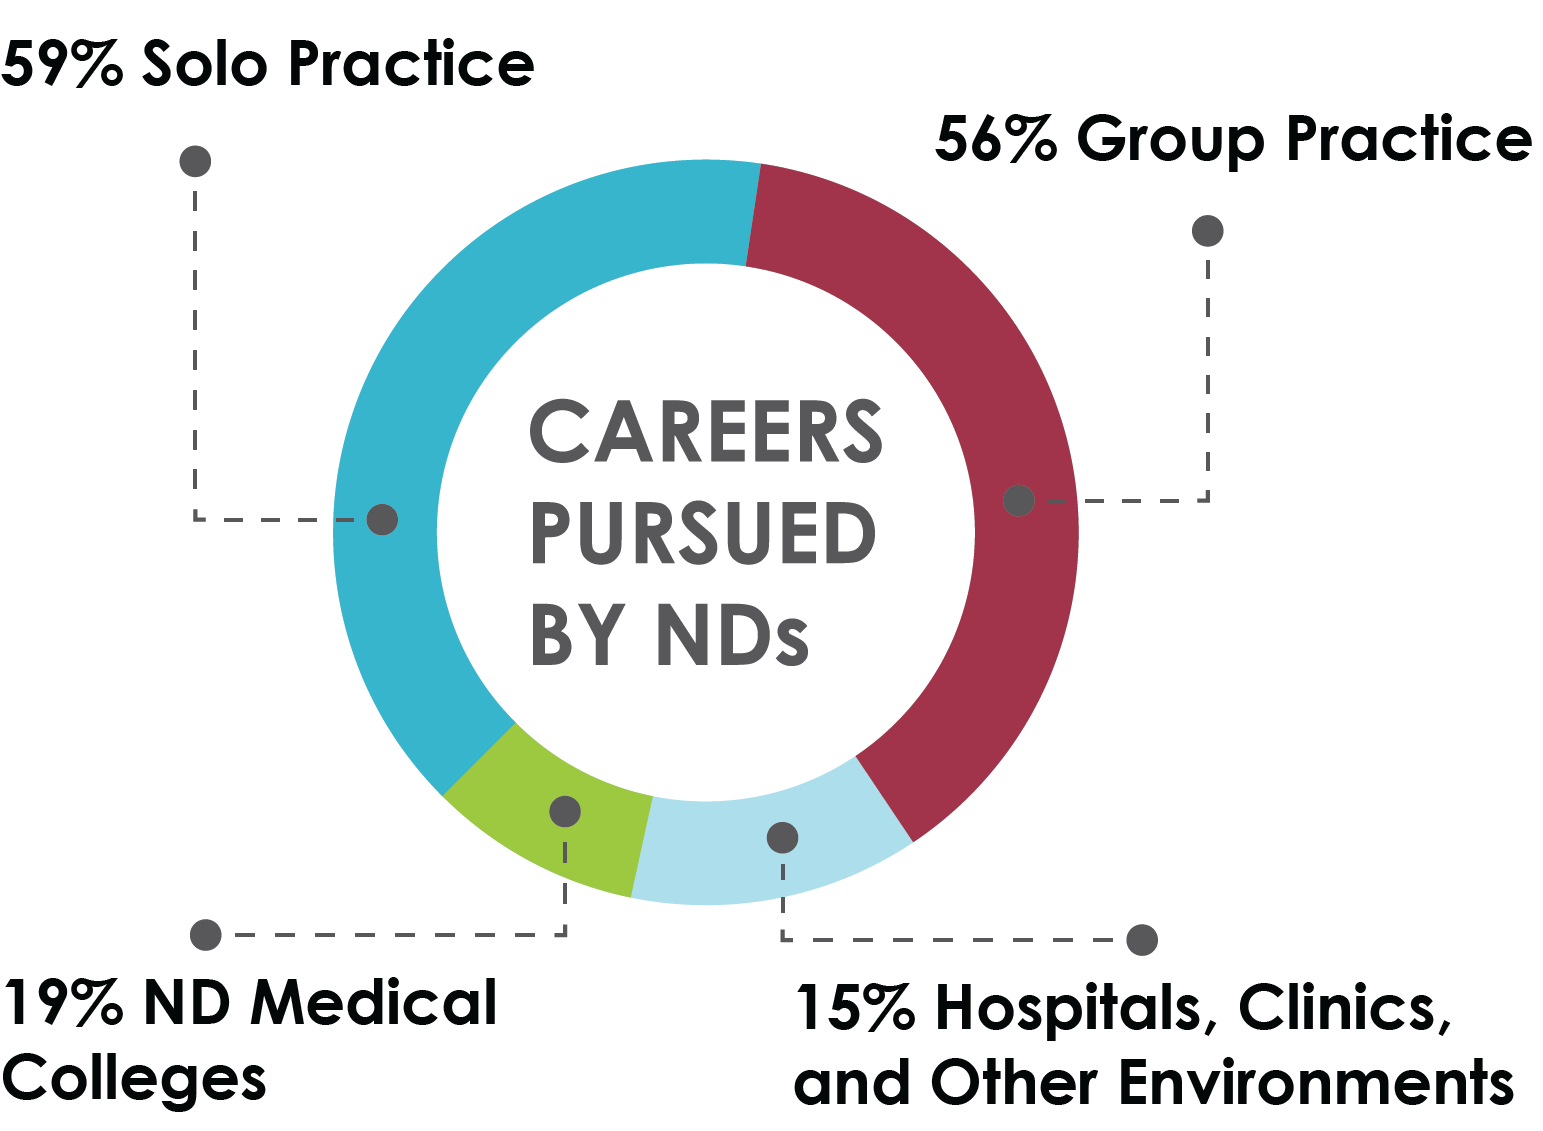 careers pursued by NDs chart